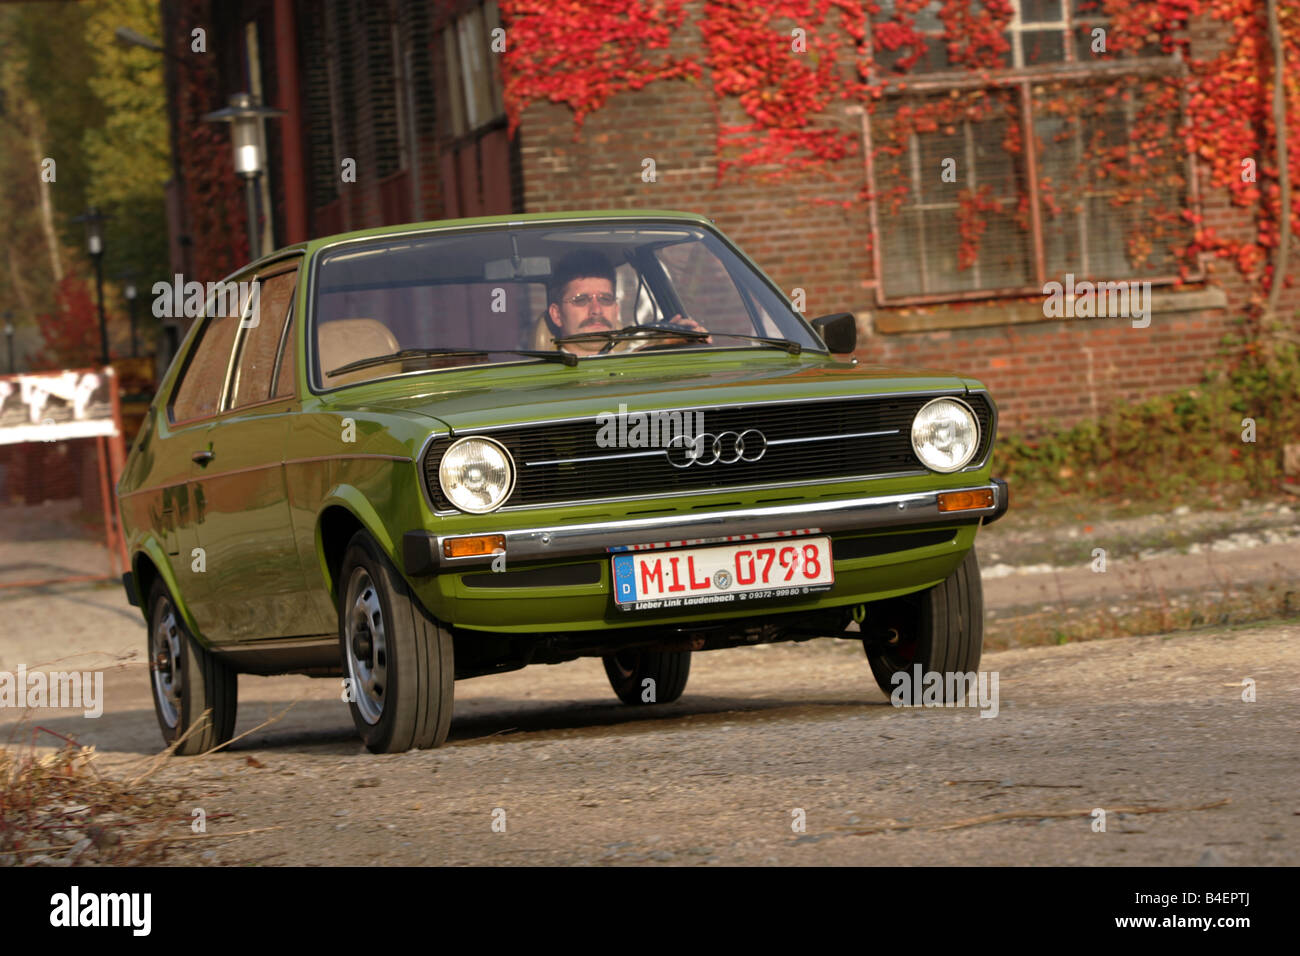 car audi 50 ls model year 1974 1978 green old car 1970s stock photo royalty free image. Black Bedroom Furniture Sets. Home Design Ideas